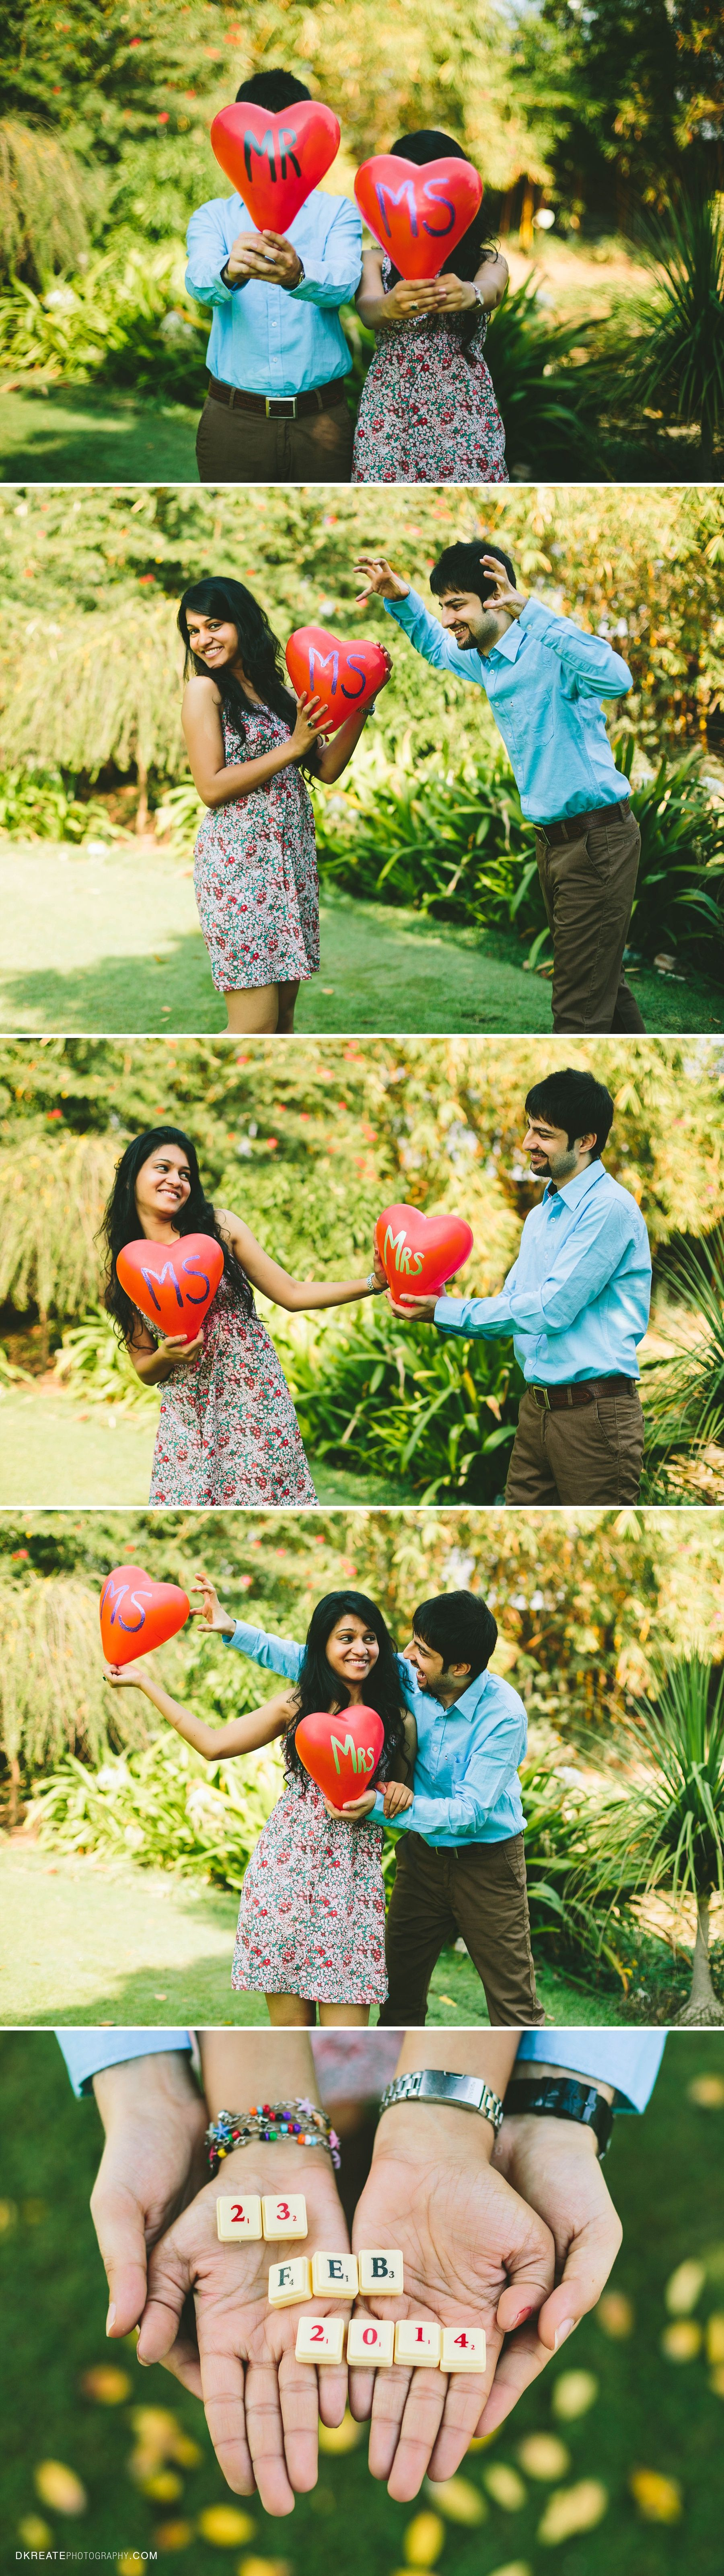 wedding invitation for friends india%0A indian pre wedding shoot  Google Search   wedding photos   Pinterest    Wedding shoot  Google and Weddings